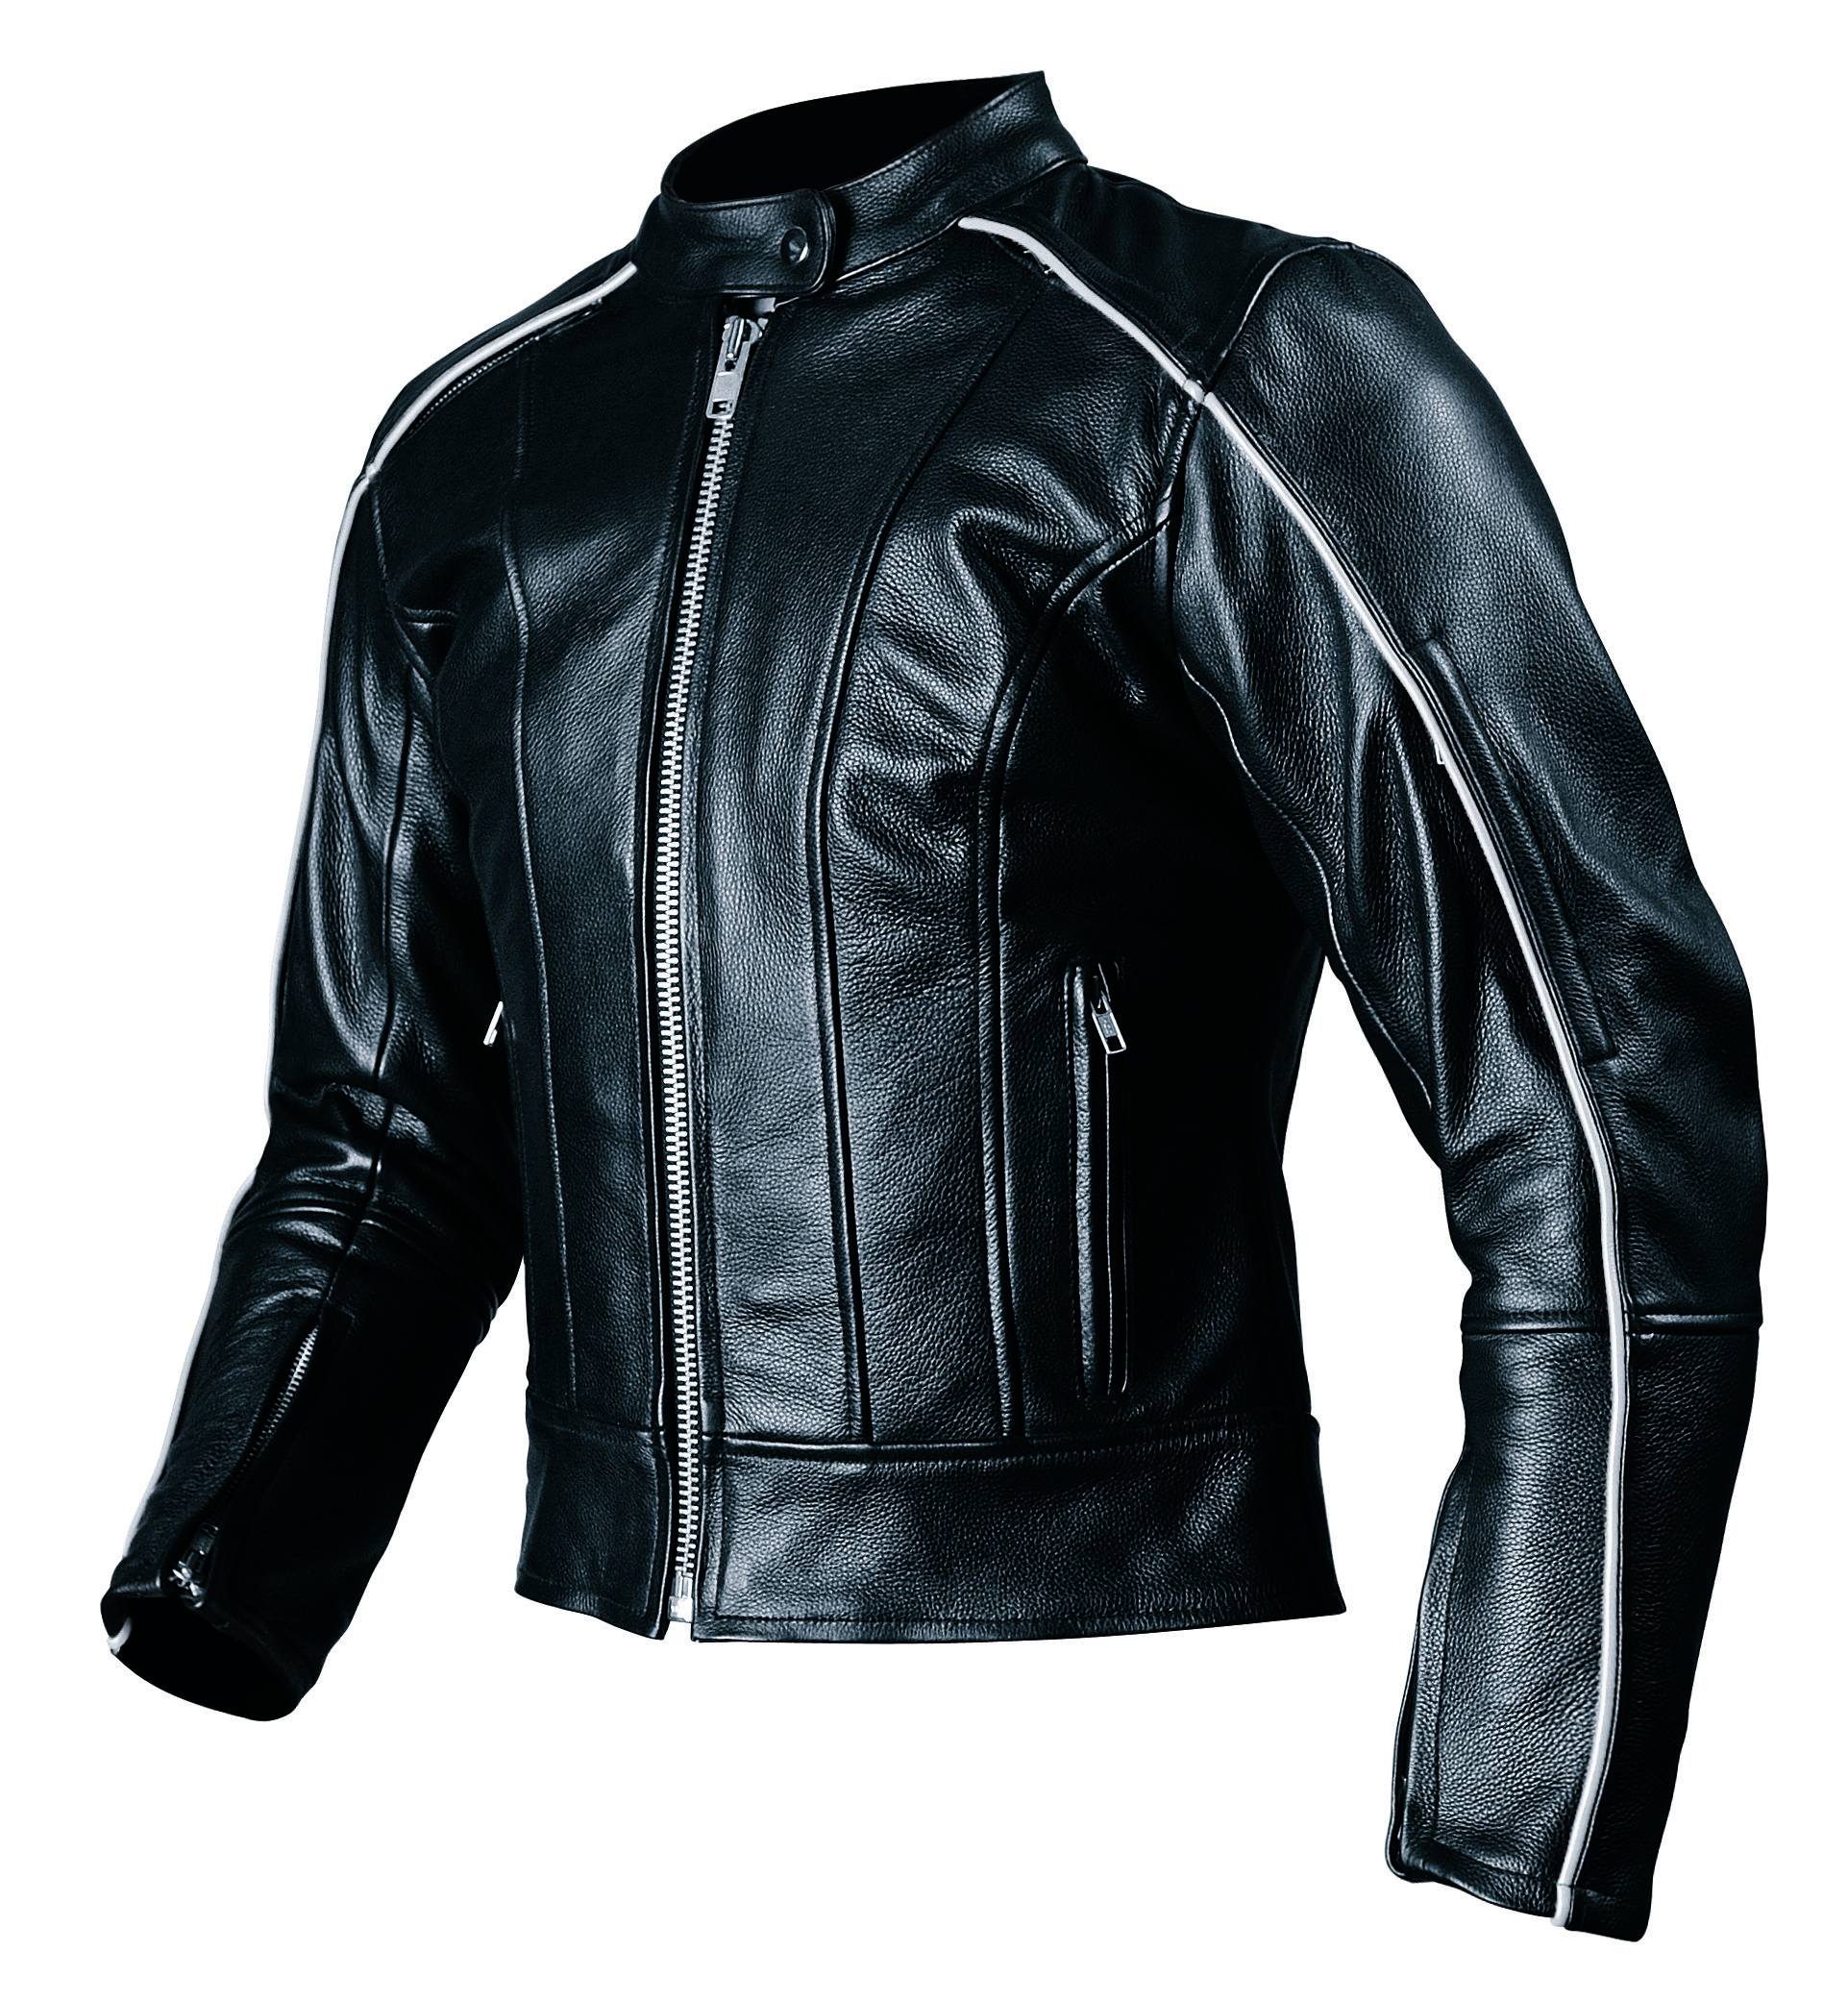 Agvsport Lotus Ladies Leather Jacket Made Of 1mm 1 1mm Premium Soft Full Grain Cowhide Leather Motorcycle Jacket Women Leather Jacket Leather Jackets Women